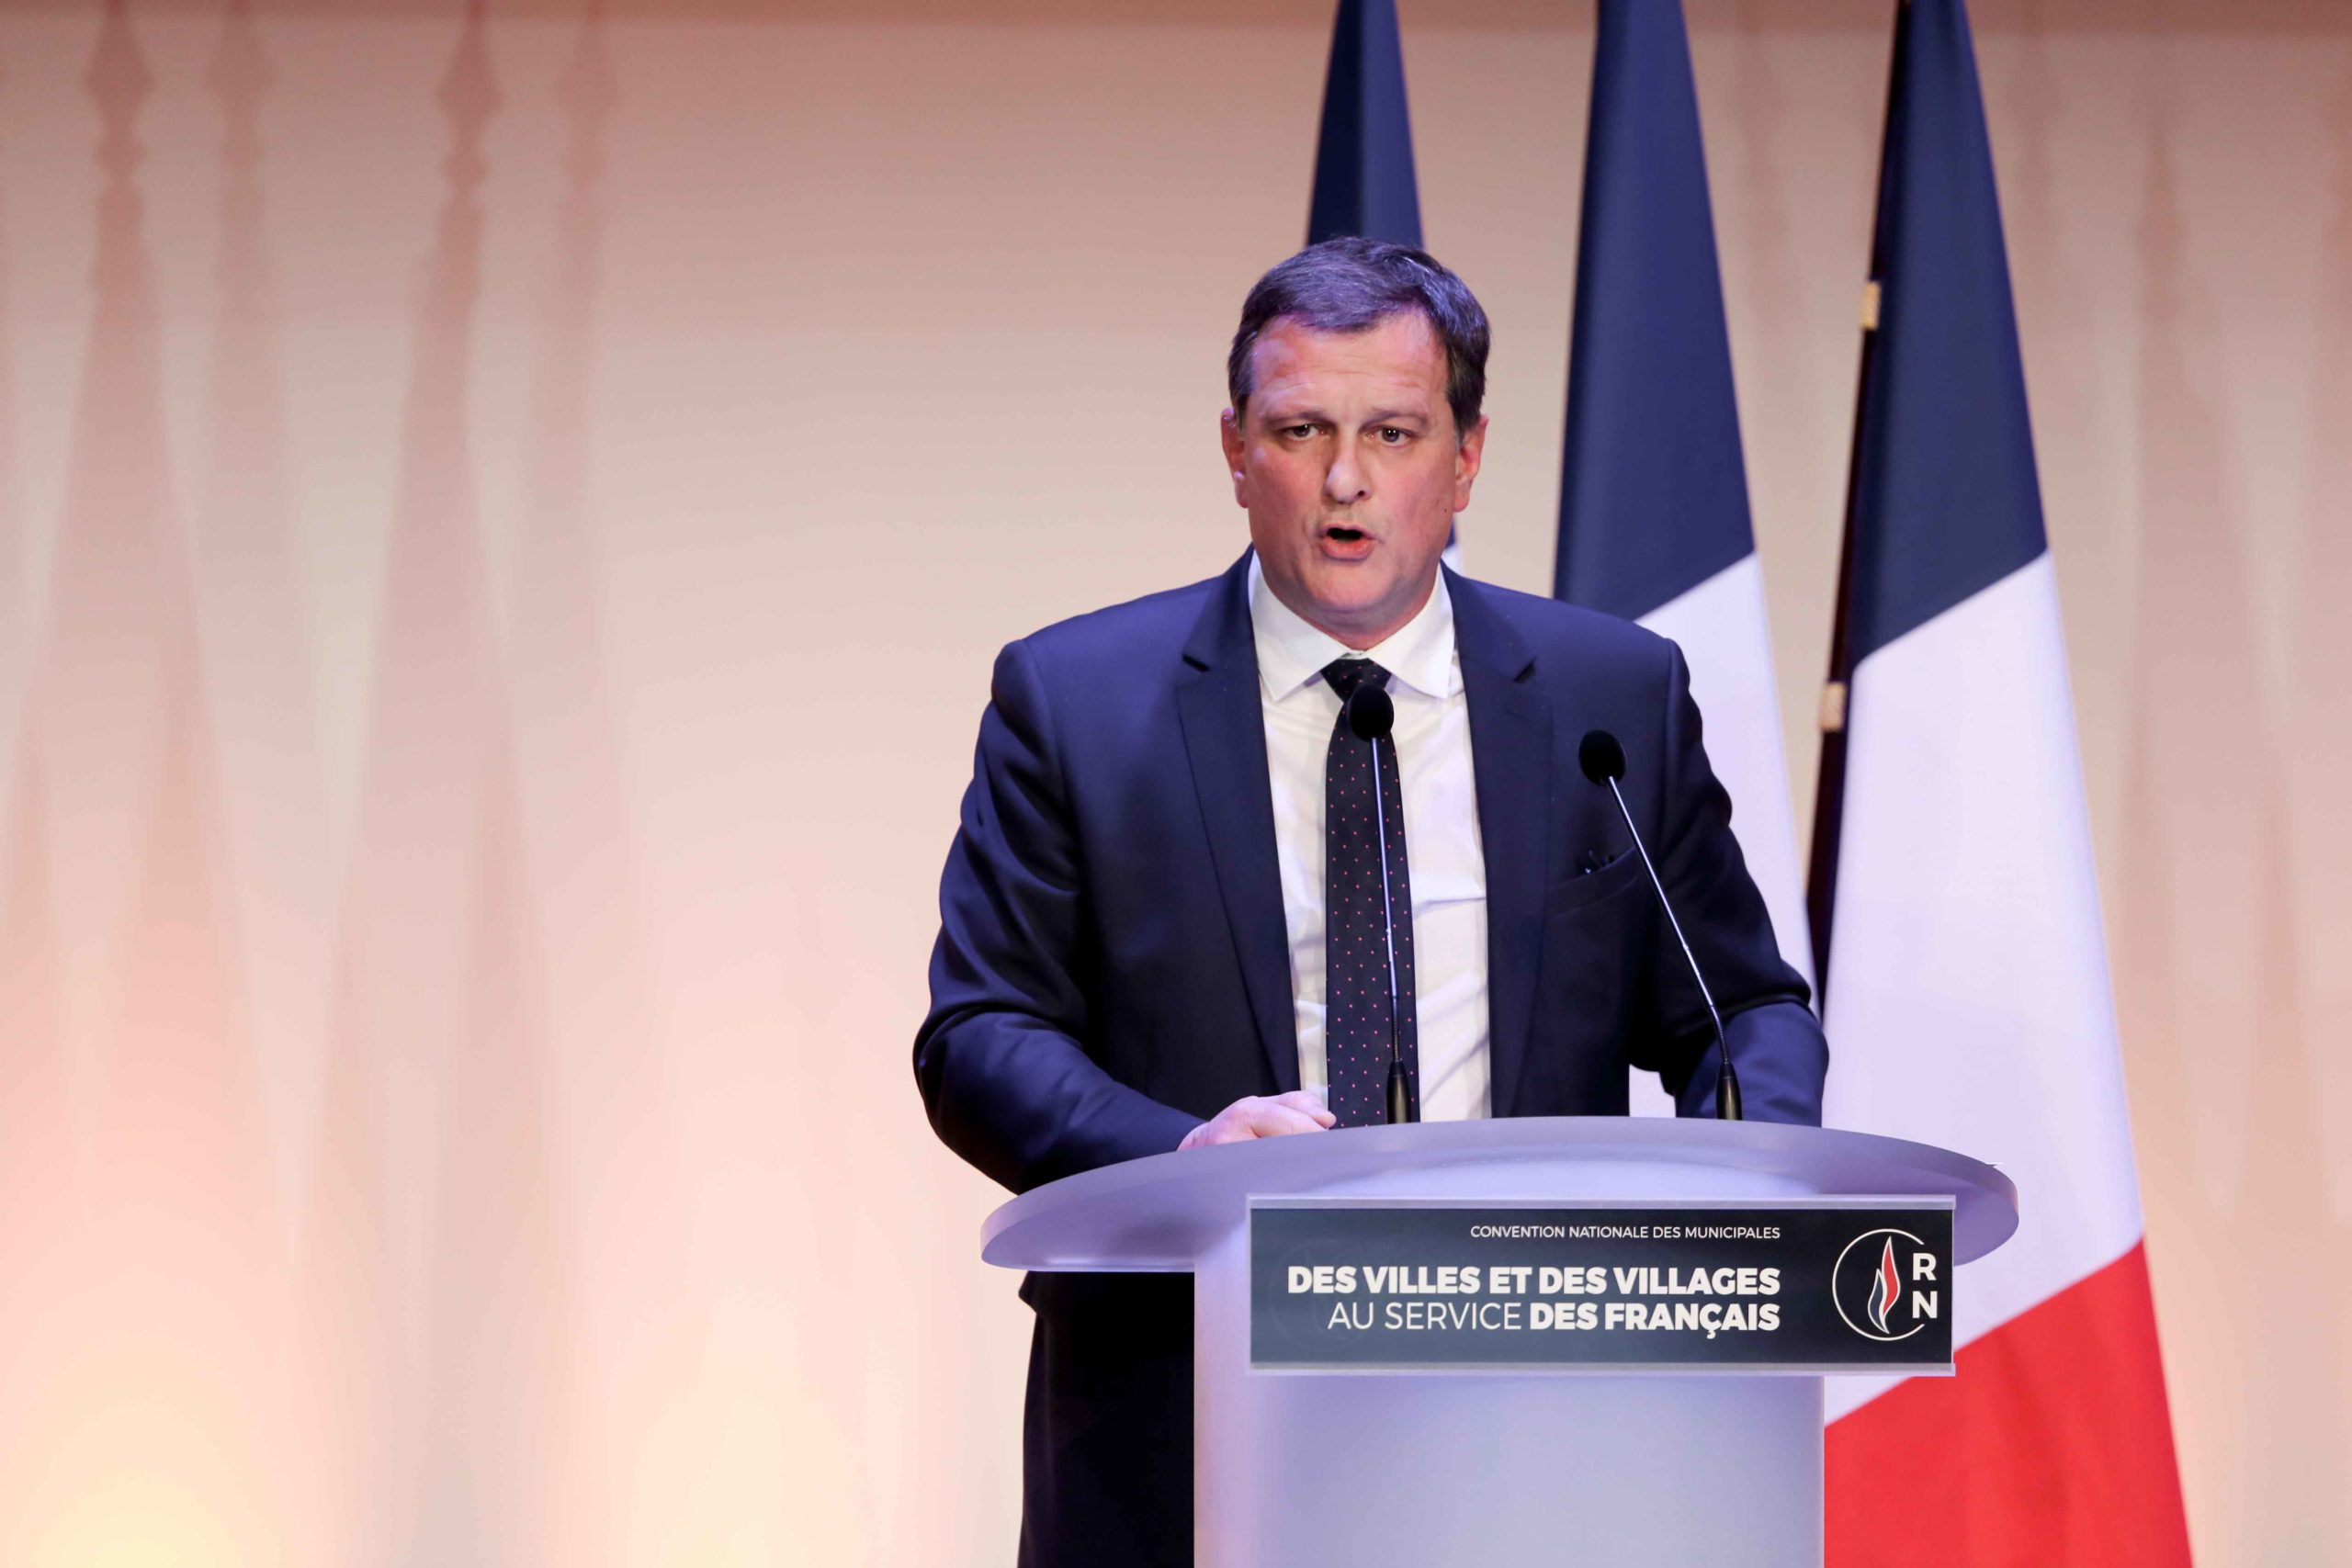 Louis Aliot, French far-right Rassemblement National (RN) party member and Member of the Parliament, speaks in Paris, on January 12, 2020, during a meeting to launch the RN campaign candidates for the next municipal elections.  The 2020 French municipal el